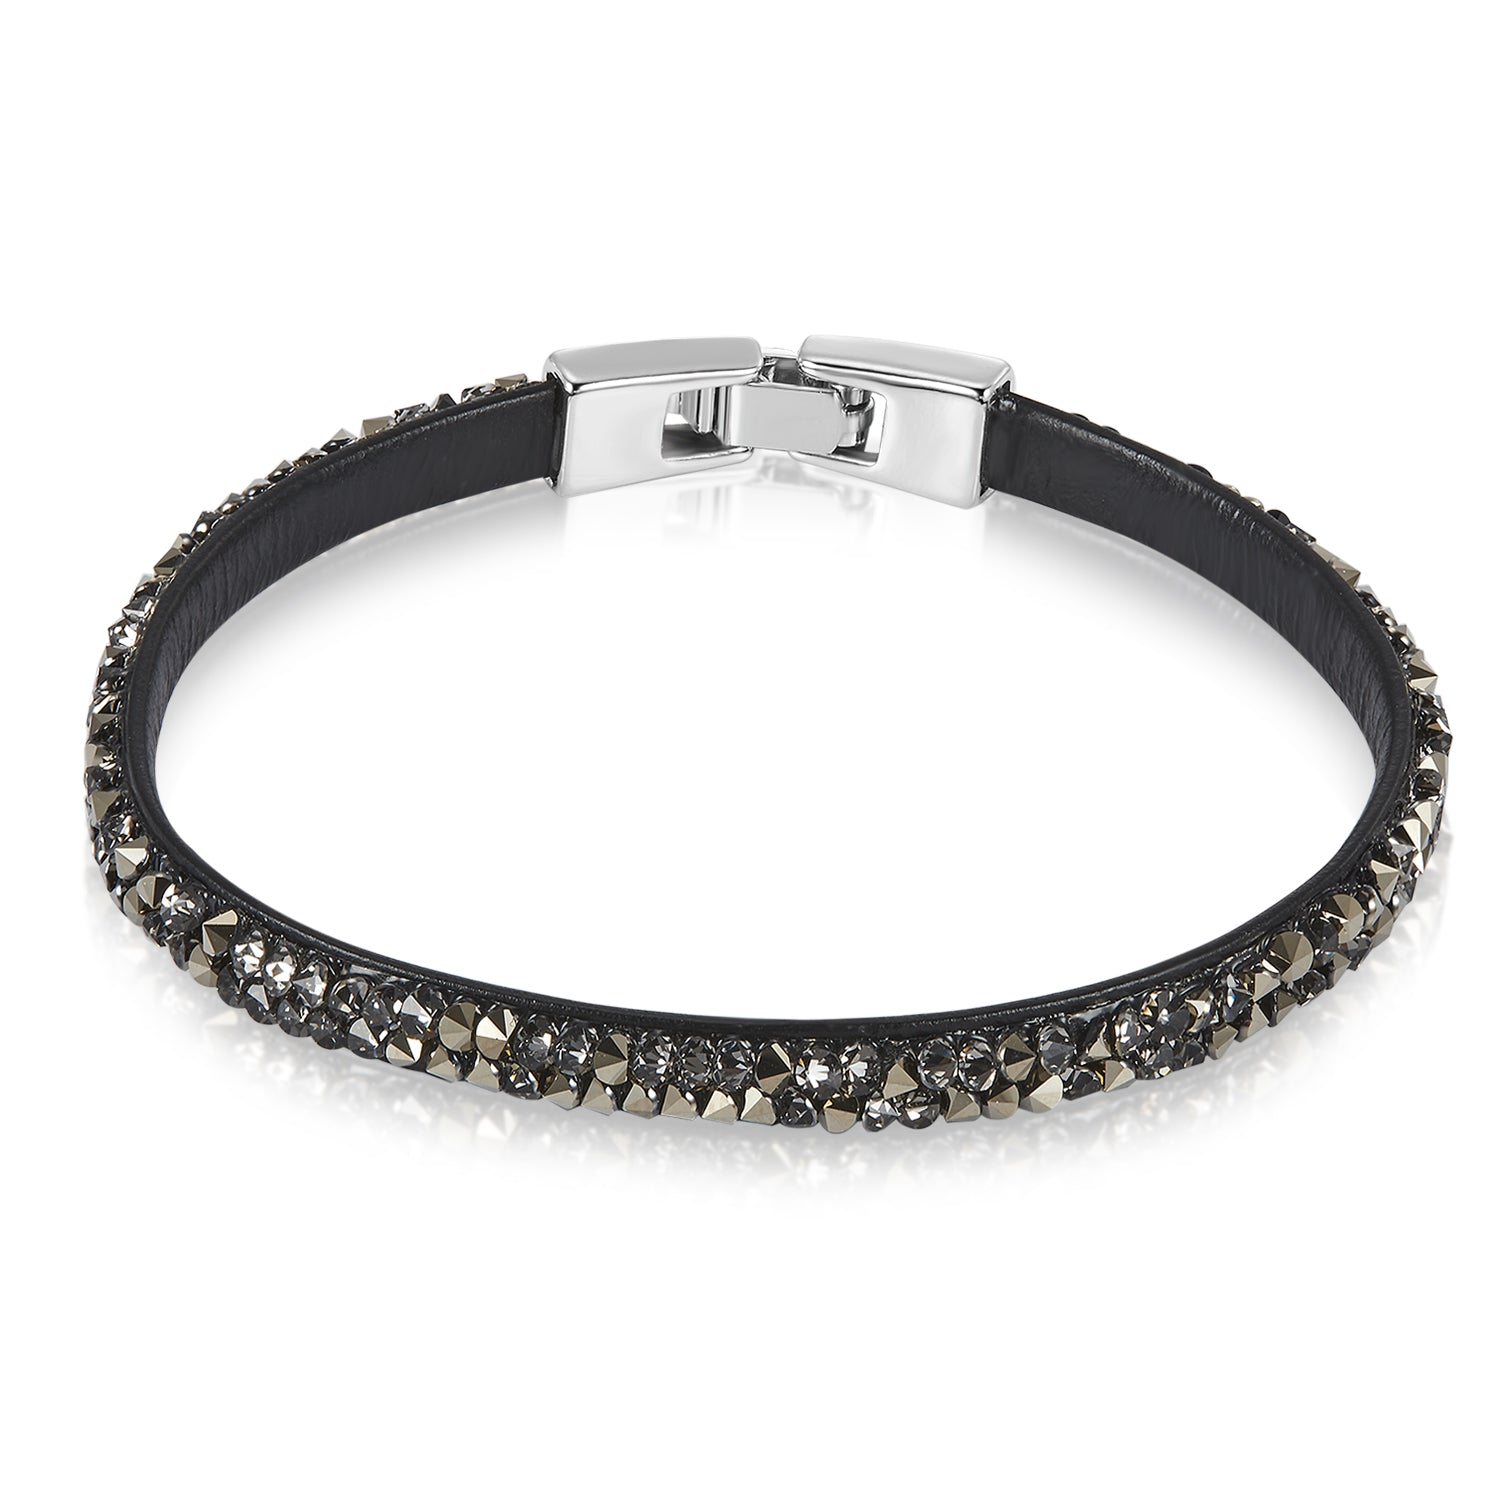 Raw Crystal Bracelet Ft Swarovski Crystals -Gray